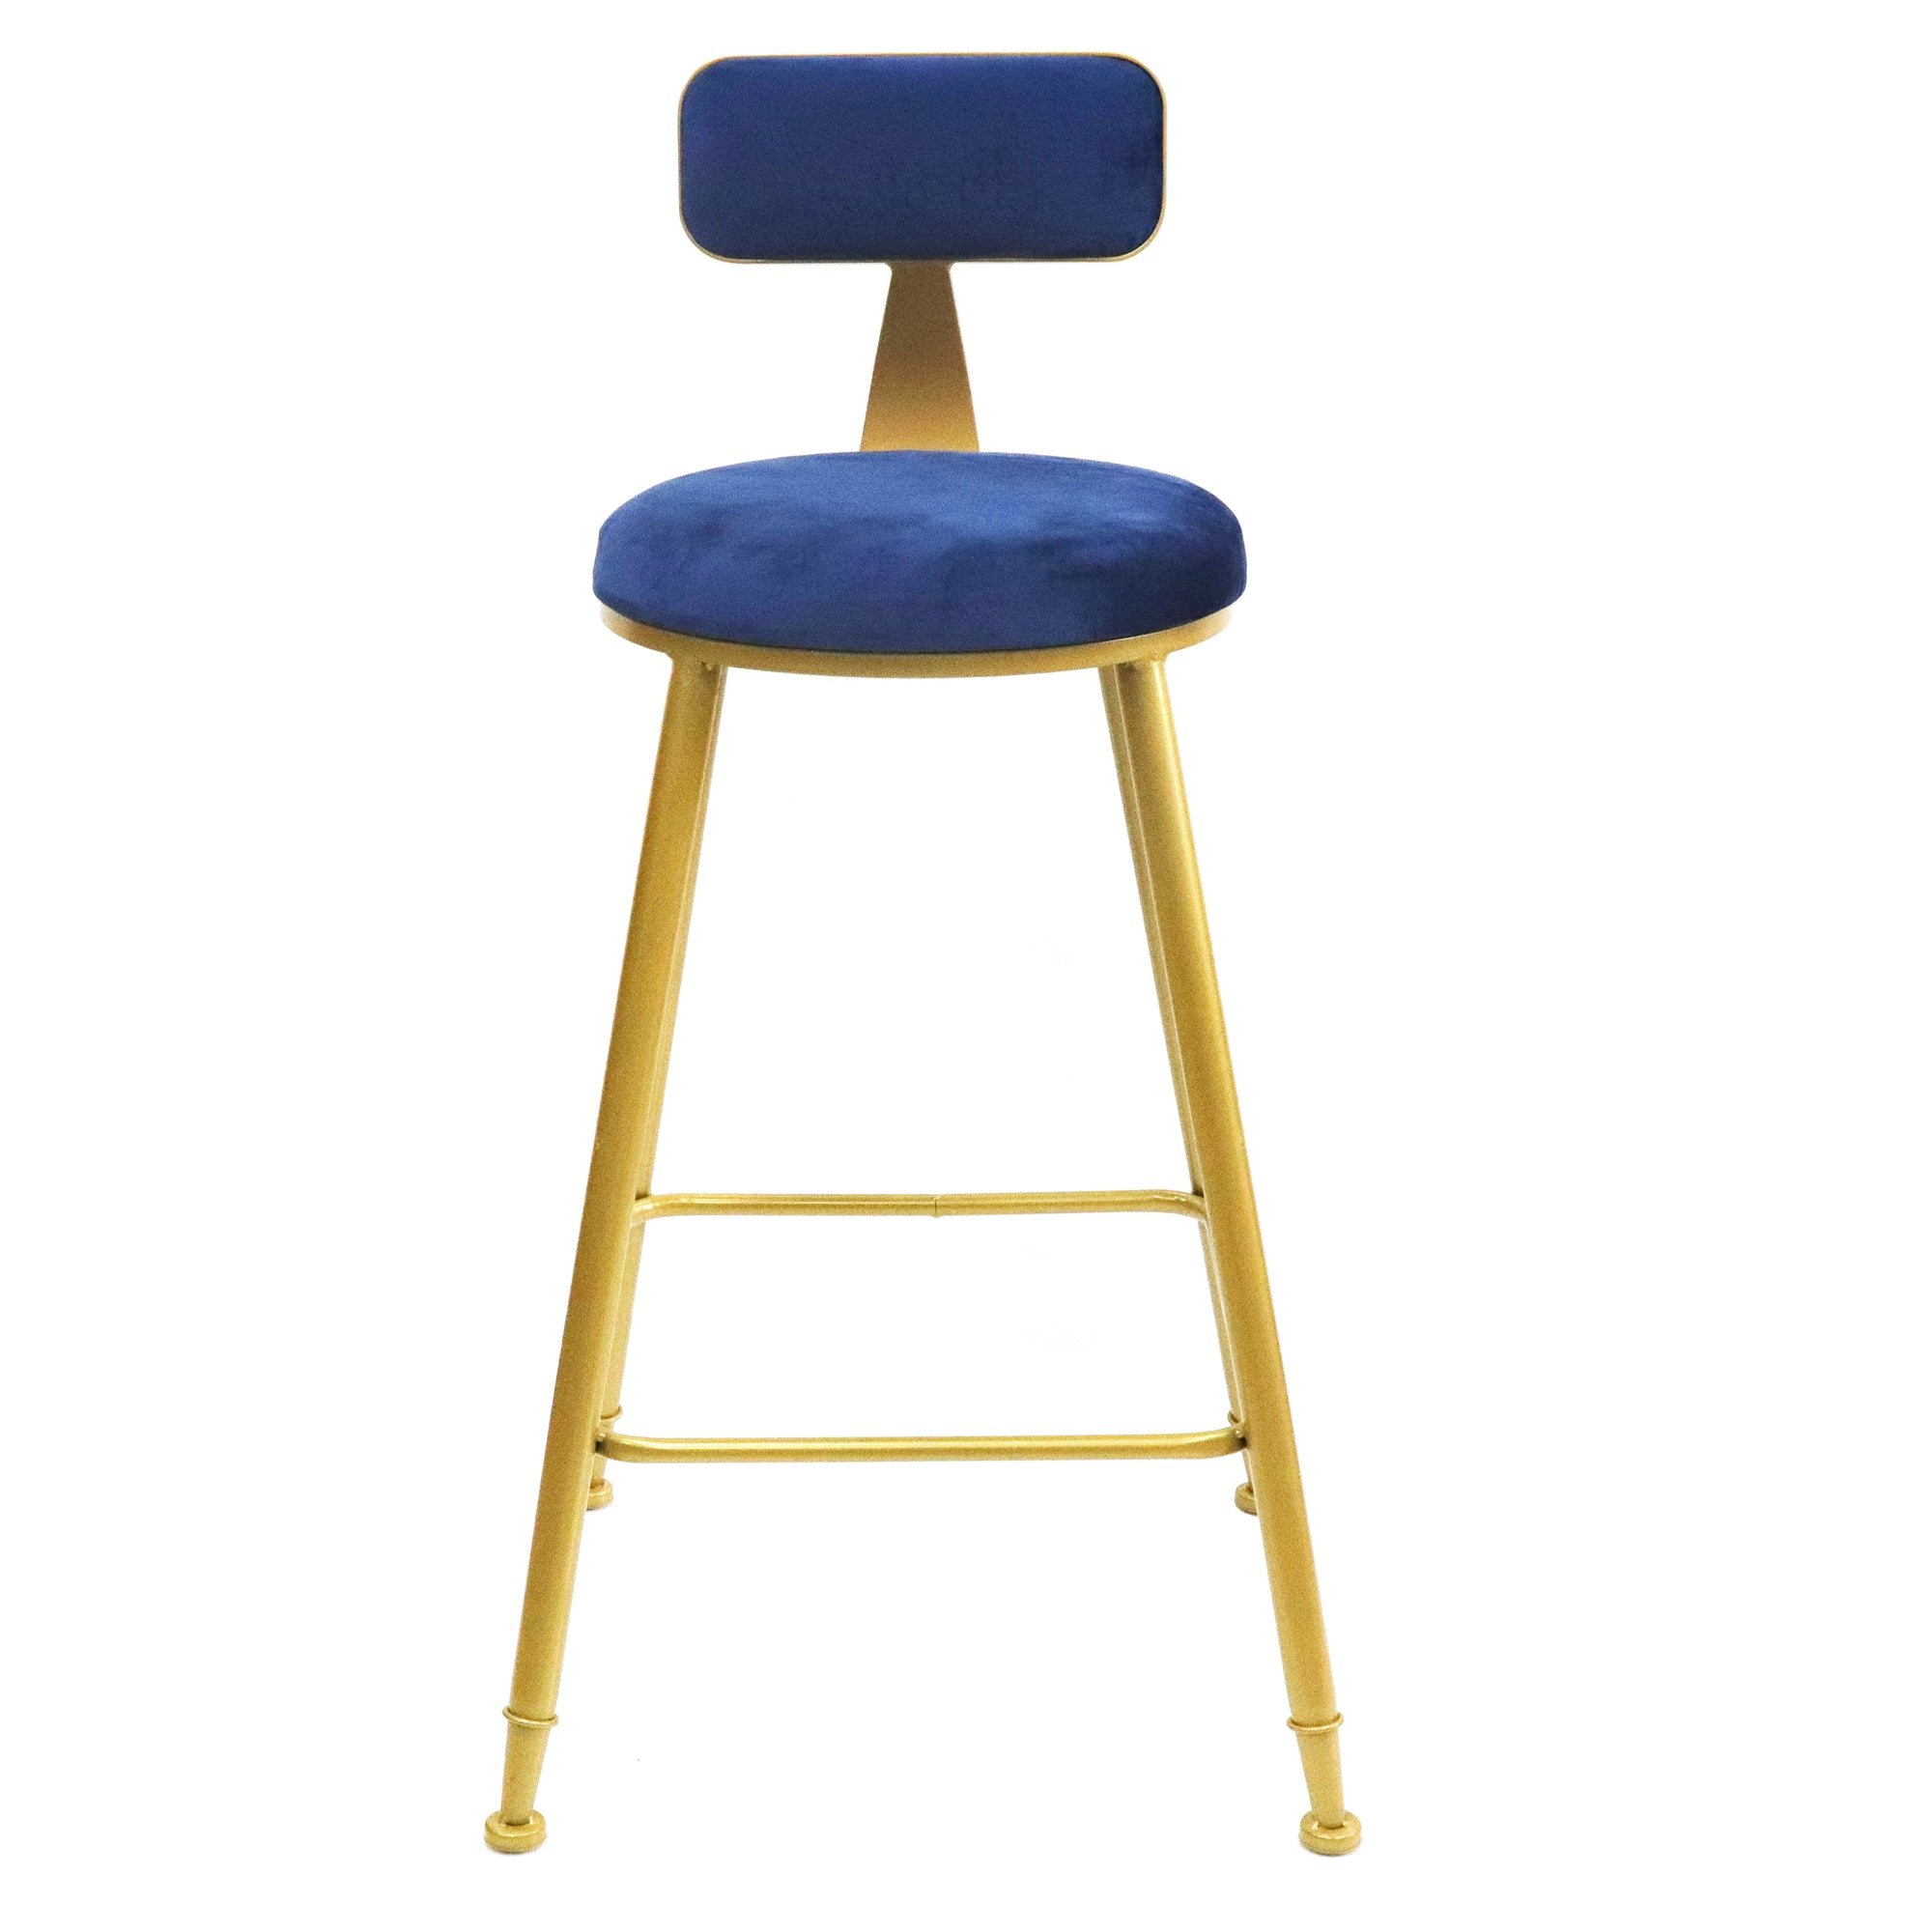 Bold Gold kitchen bench height stool Blue - decorstore